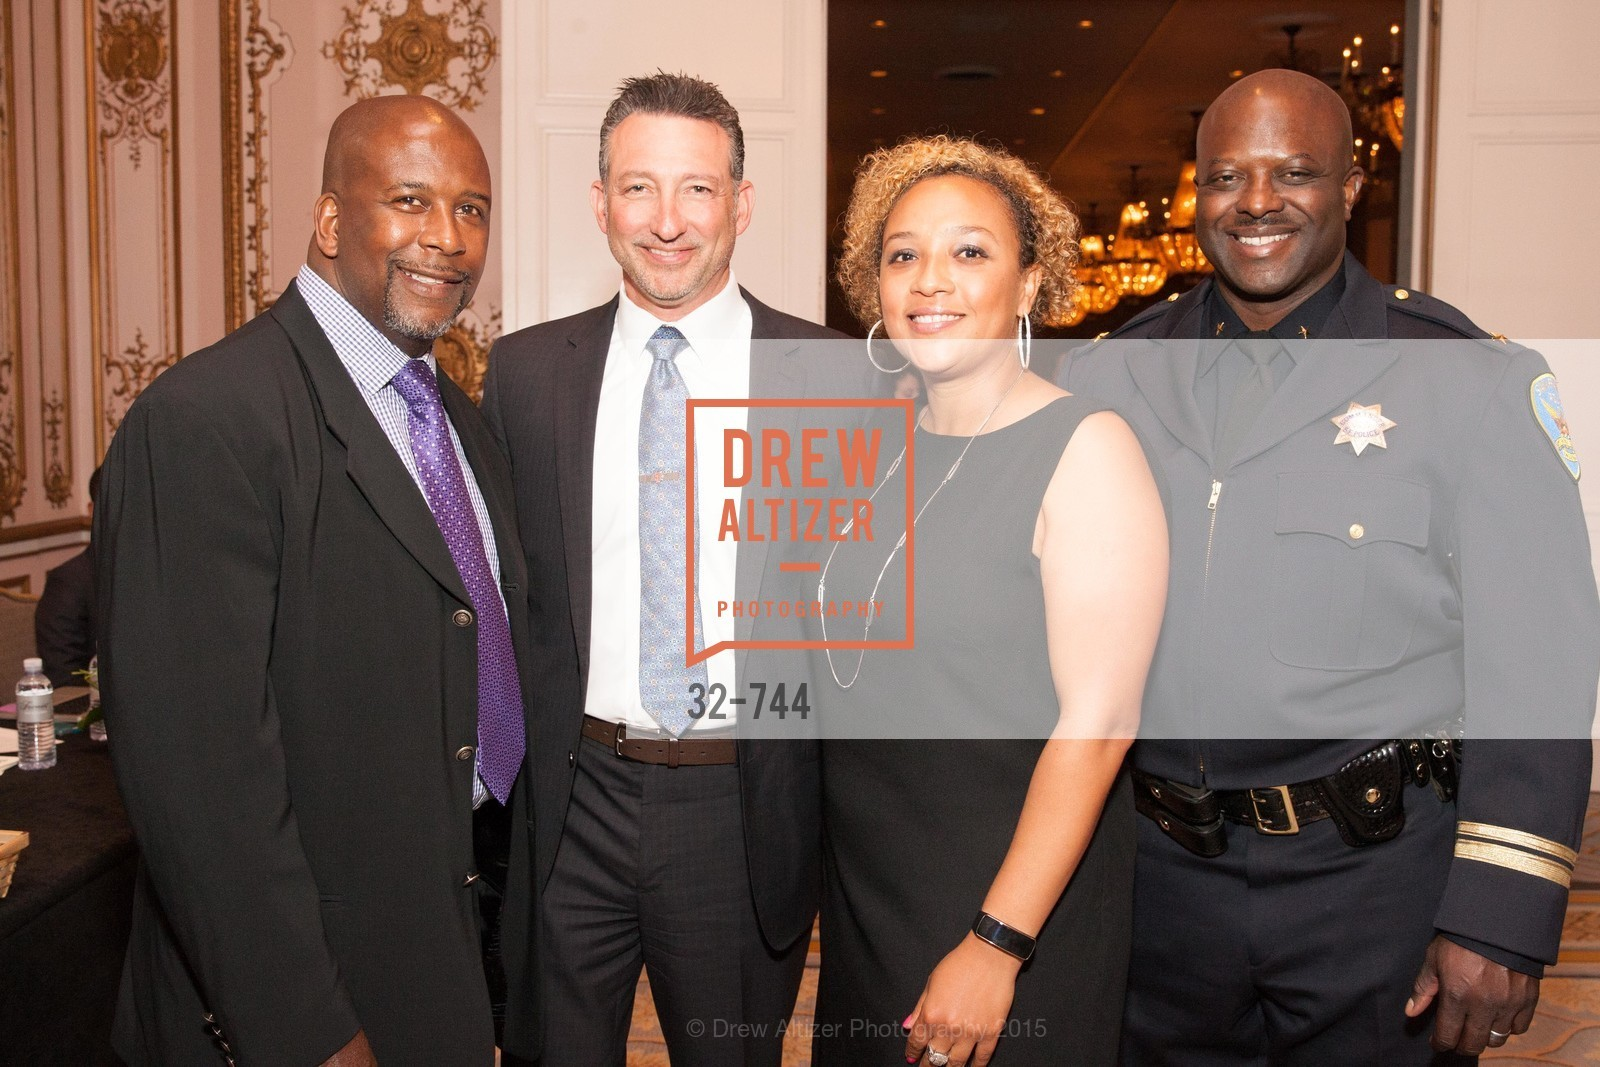 Van Jackson, Frank Carrubba, Maxine Wilson, Mikail Ali, Celebration of Launch of SHYP in Los Angeles, US, May 21st, 2015,Drew Altizer, Drew Altizer Photography, full-service agency, private events, San Francisco photographer, photographer california